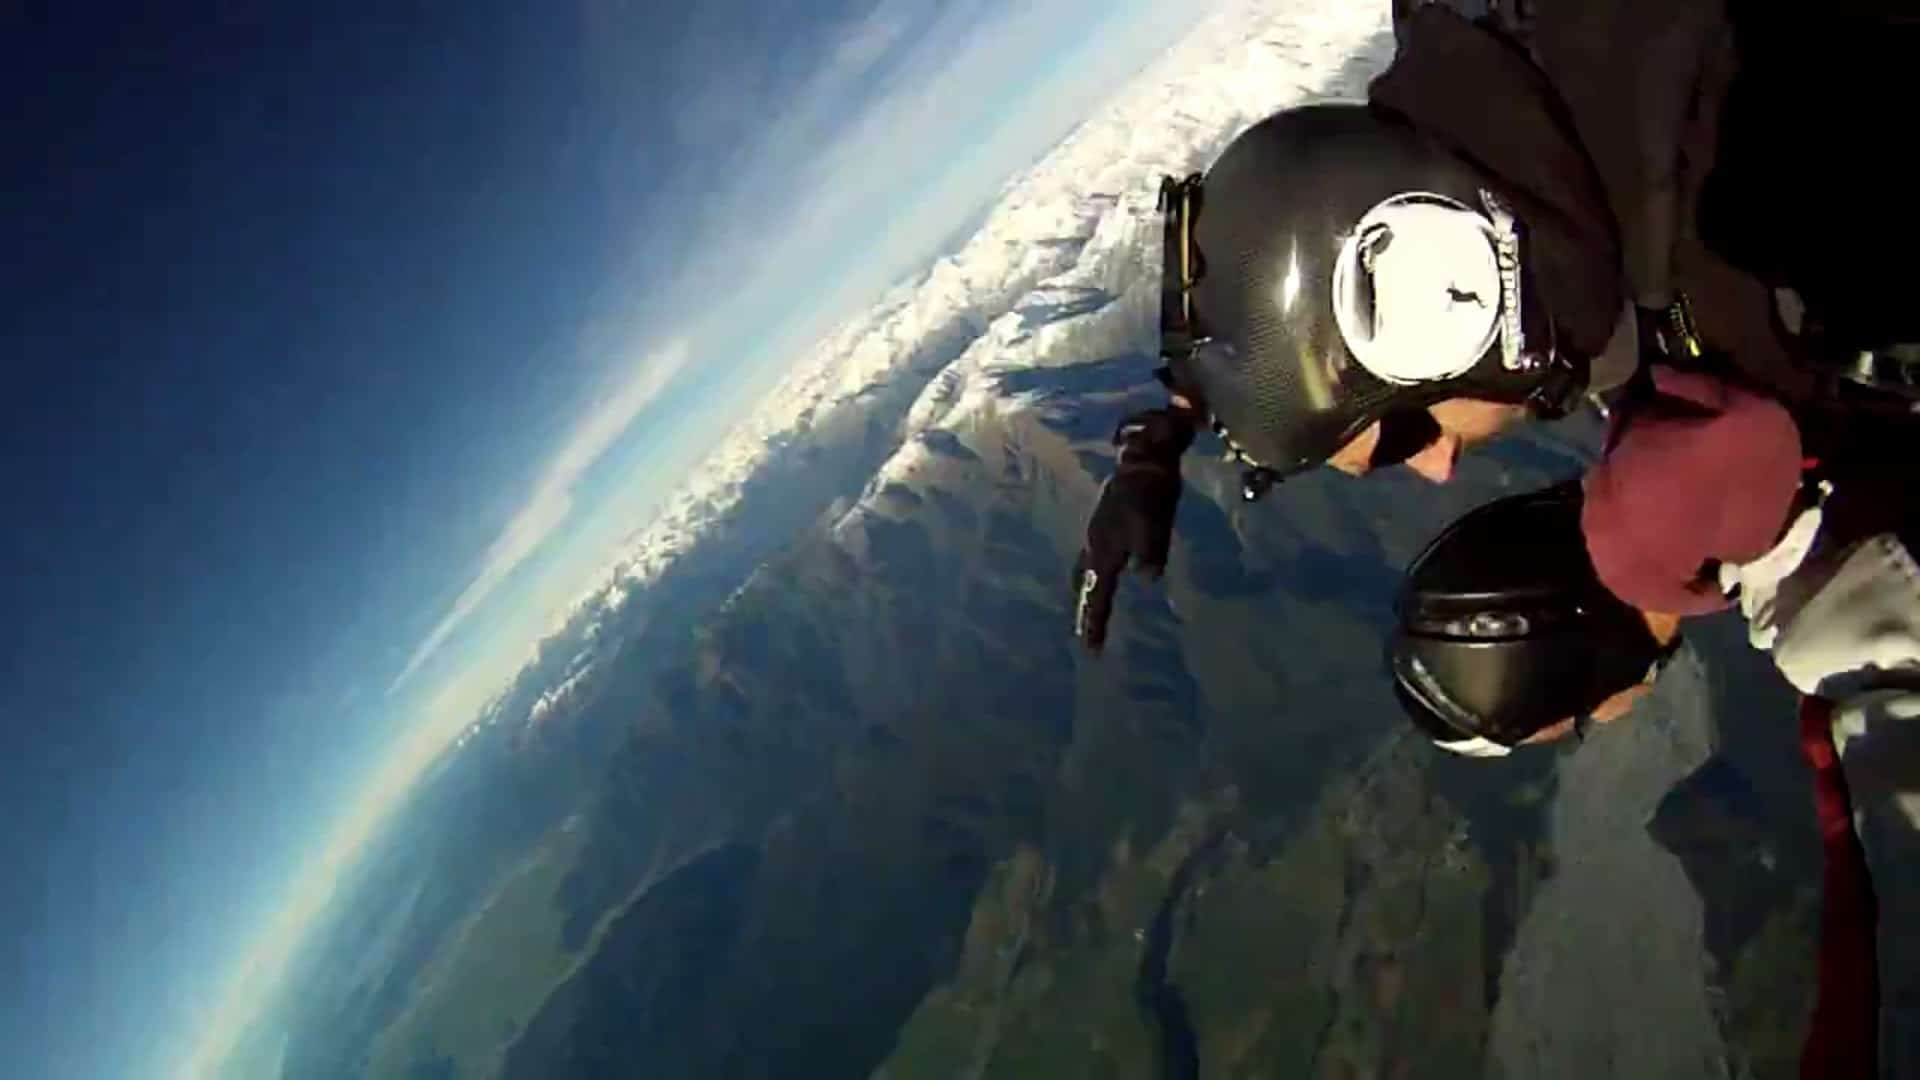 Falling in style at the Fox Glacier Skydive